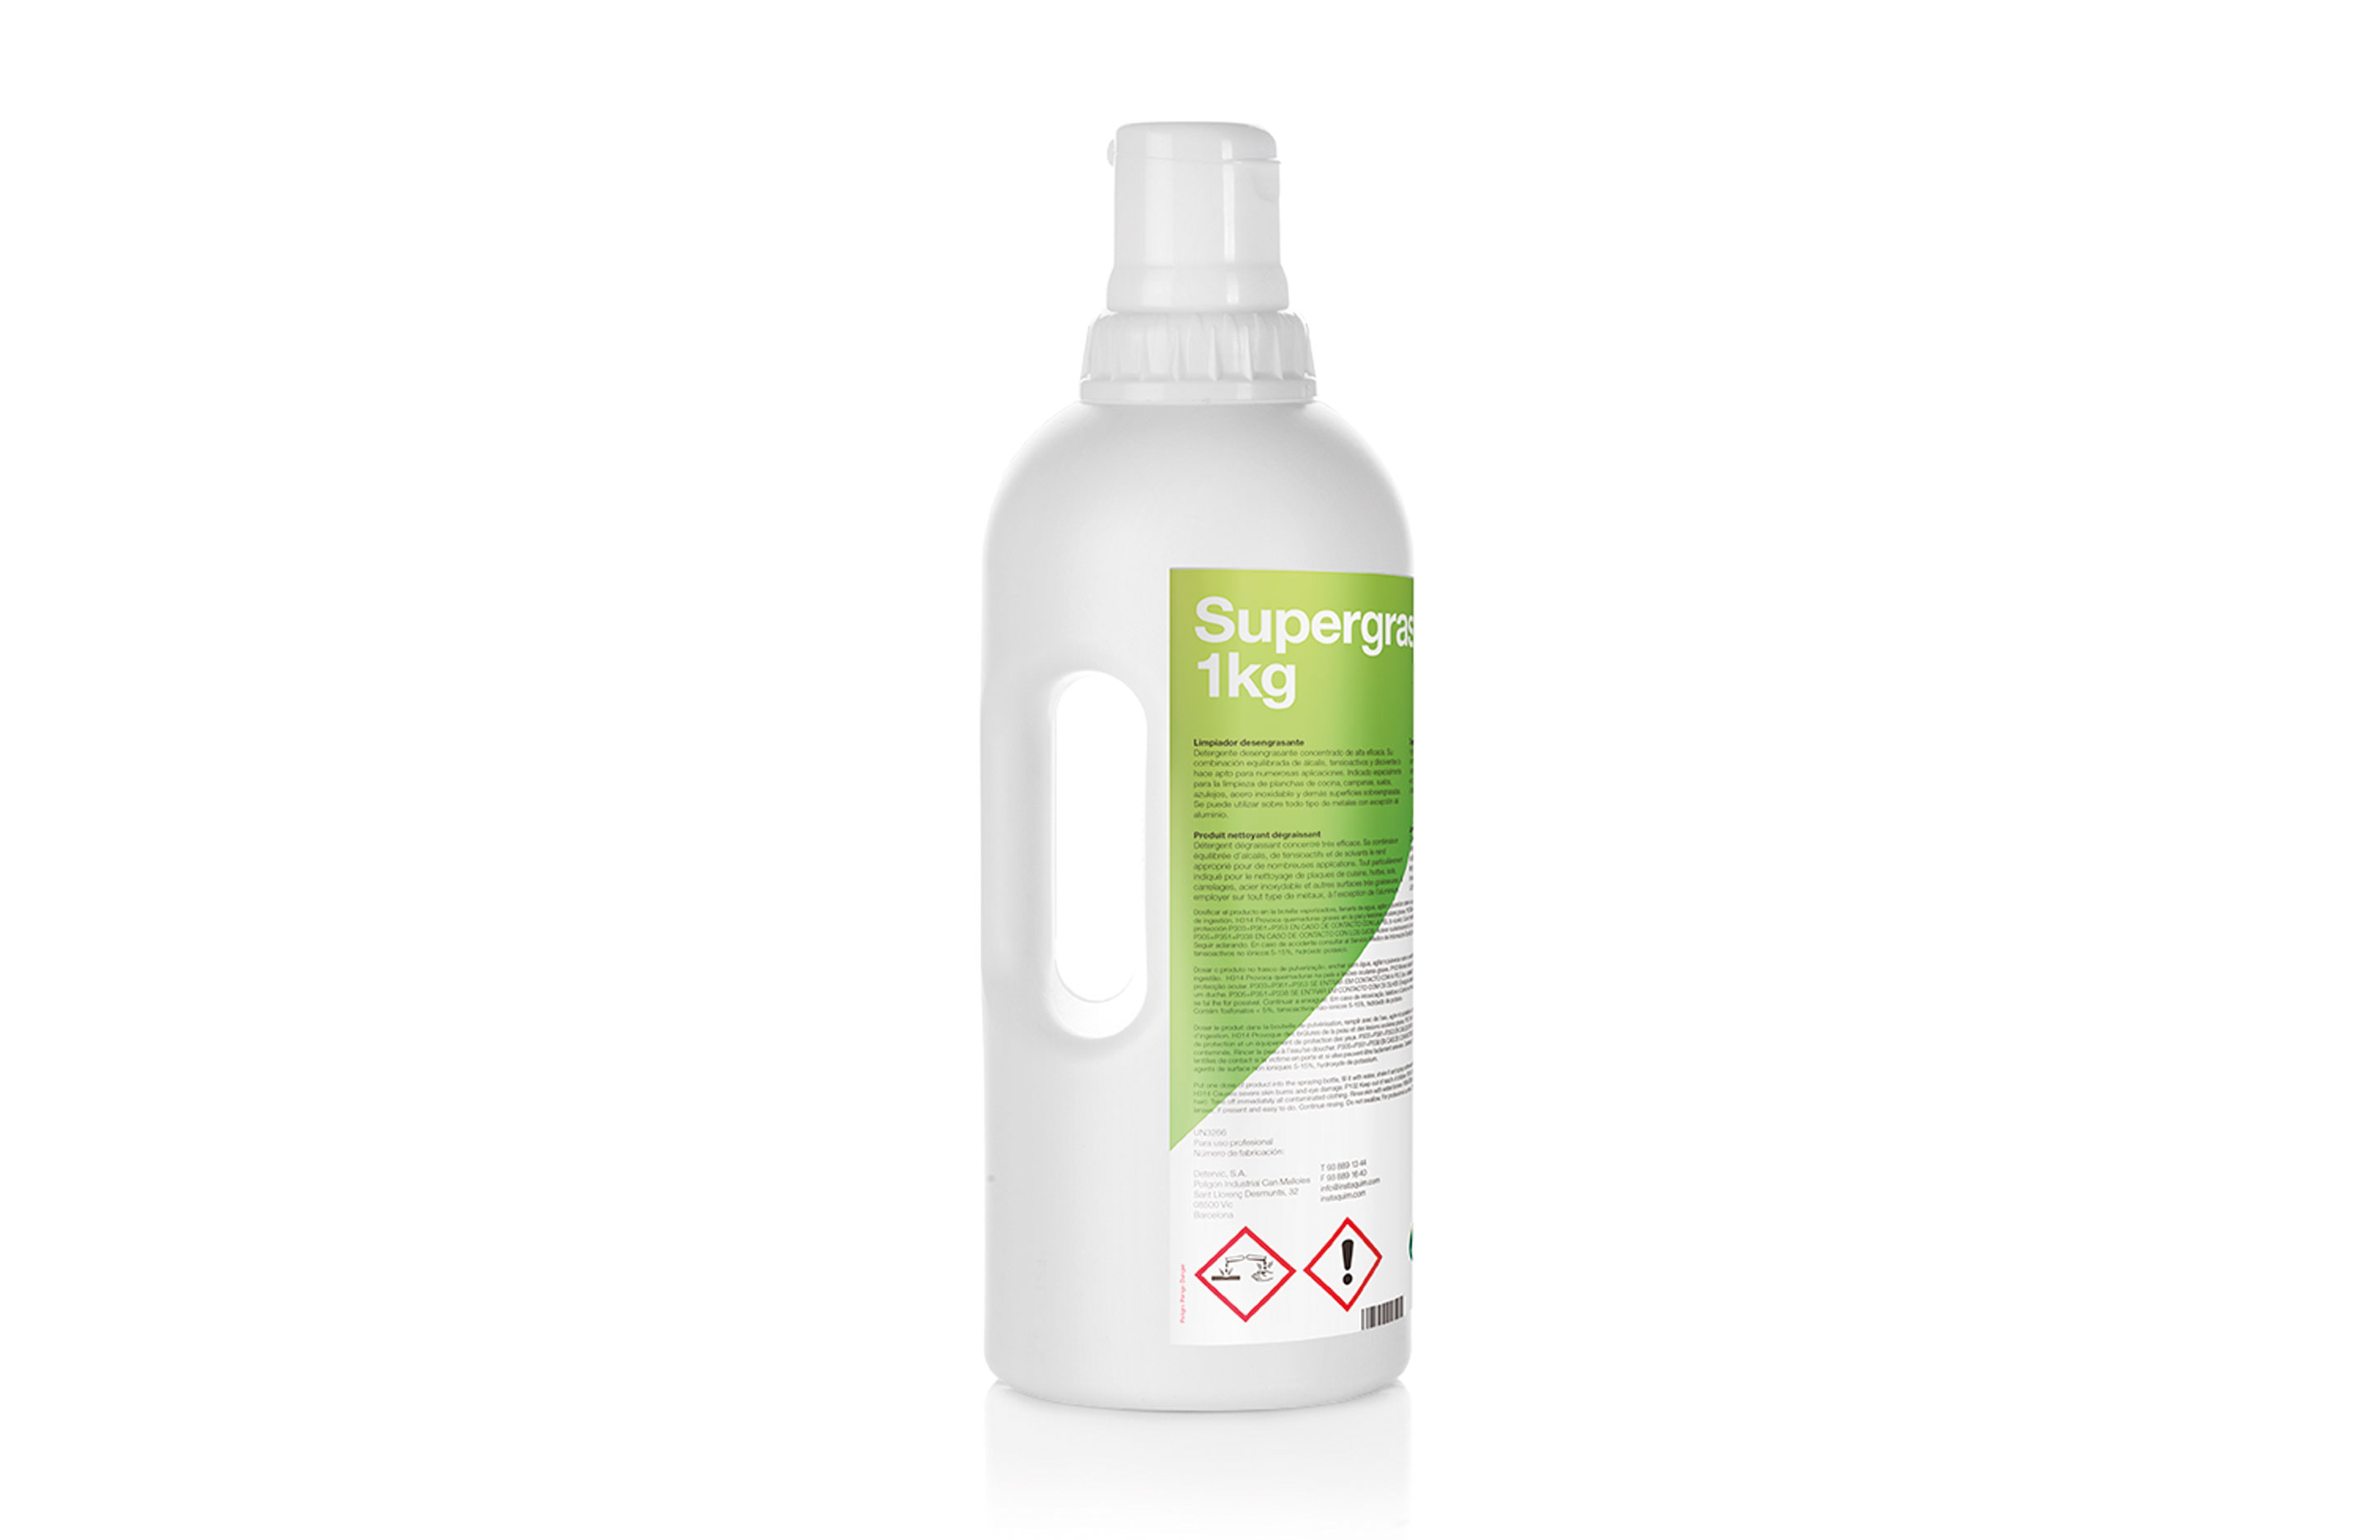 Supergrass, Degreasing cleaner - Autodosis